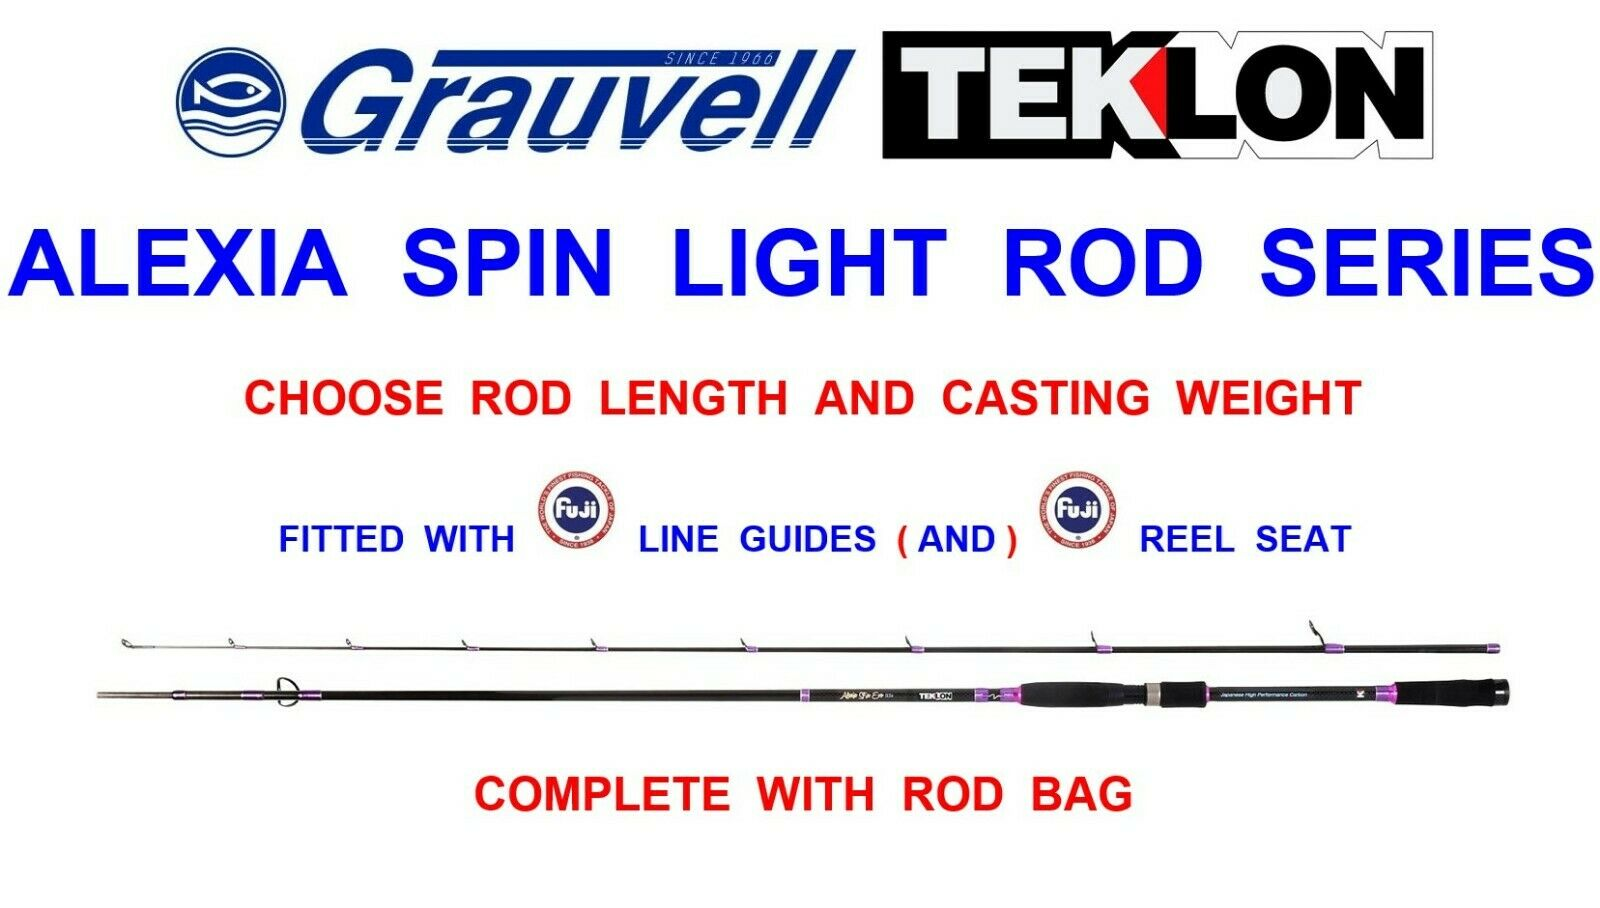 greyVELL TEKLON ALEXIA SPIN LIGHT ROD SEA GAME COARSE FISHING LURE SPINNING RODS